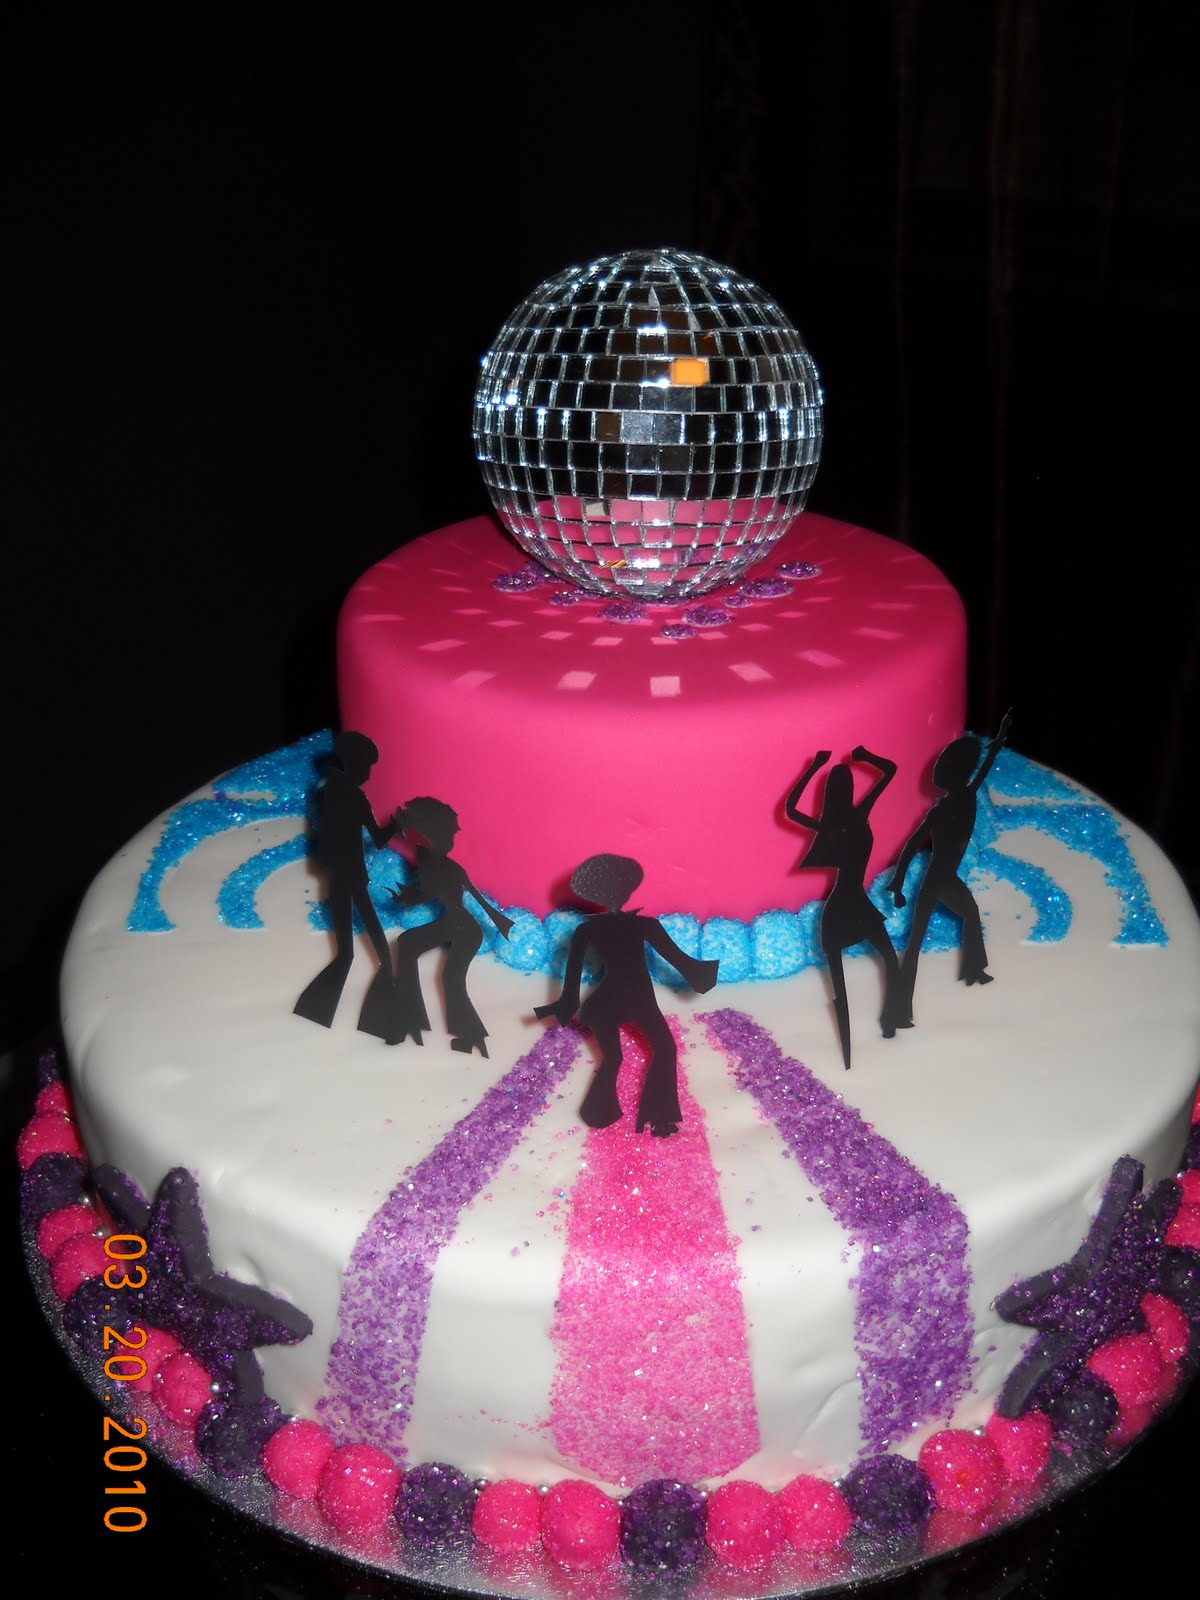 Cake Decorating Disco Ball : Jocelyn s Wedding Cakes and More....: disco cake